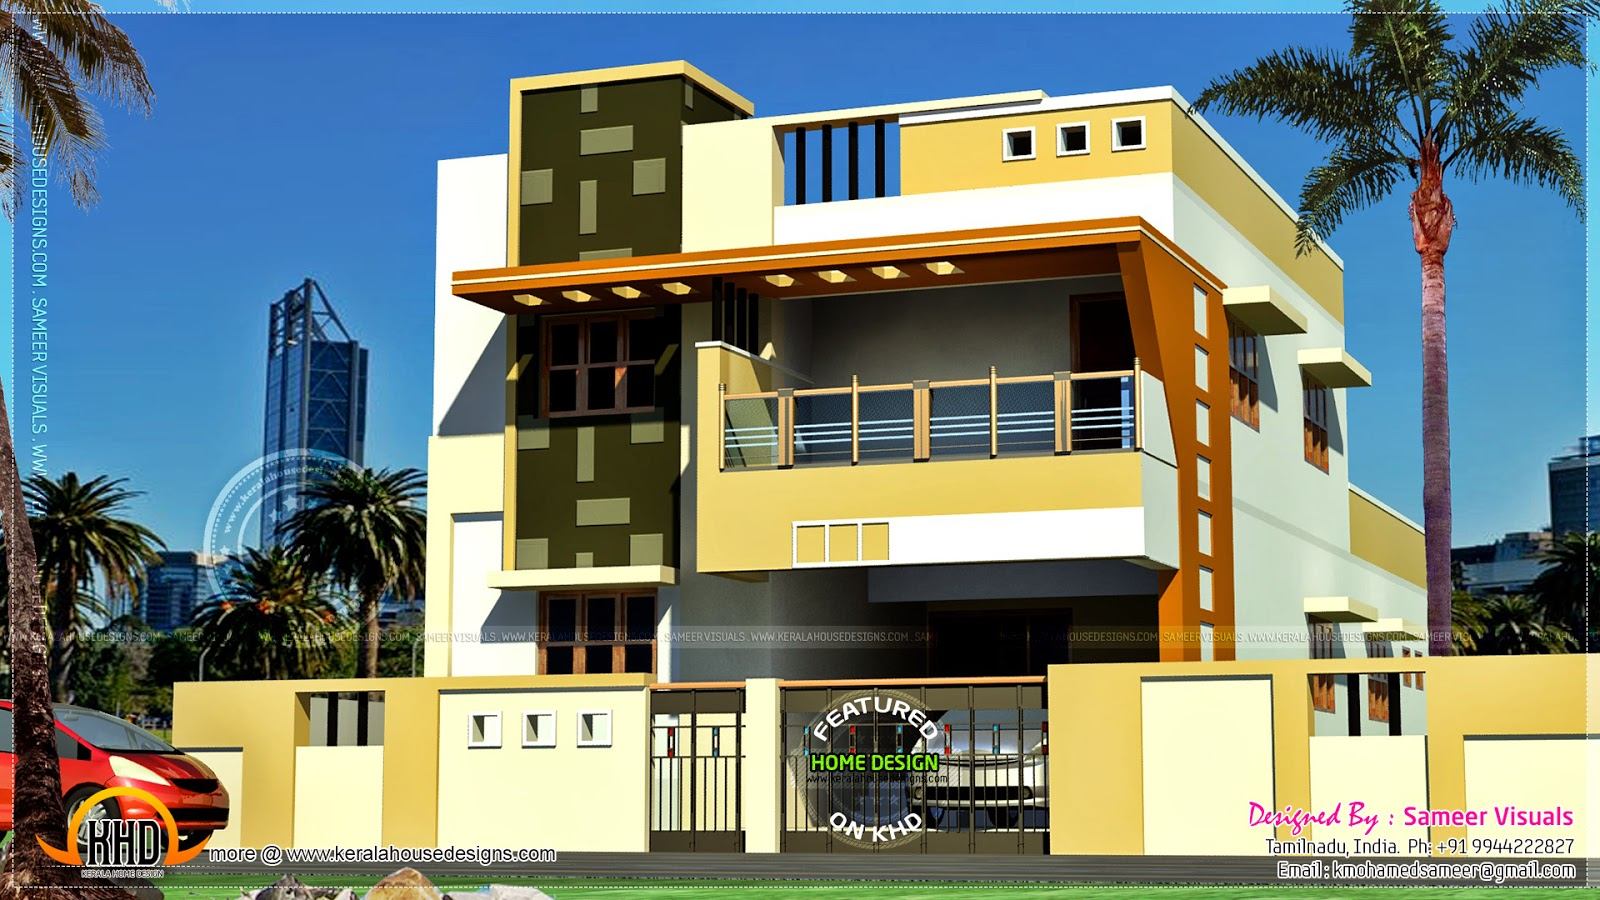 Modern south indian house design kerala home design and for Indian style home plans